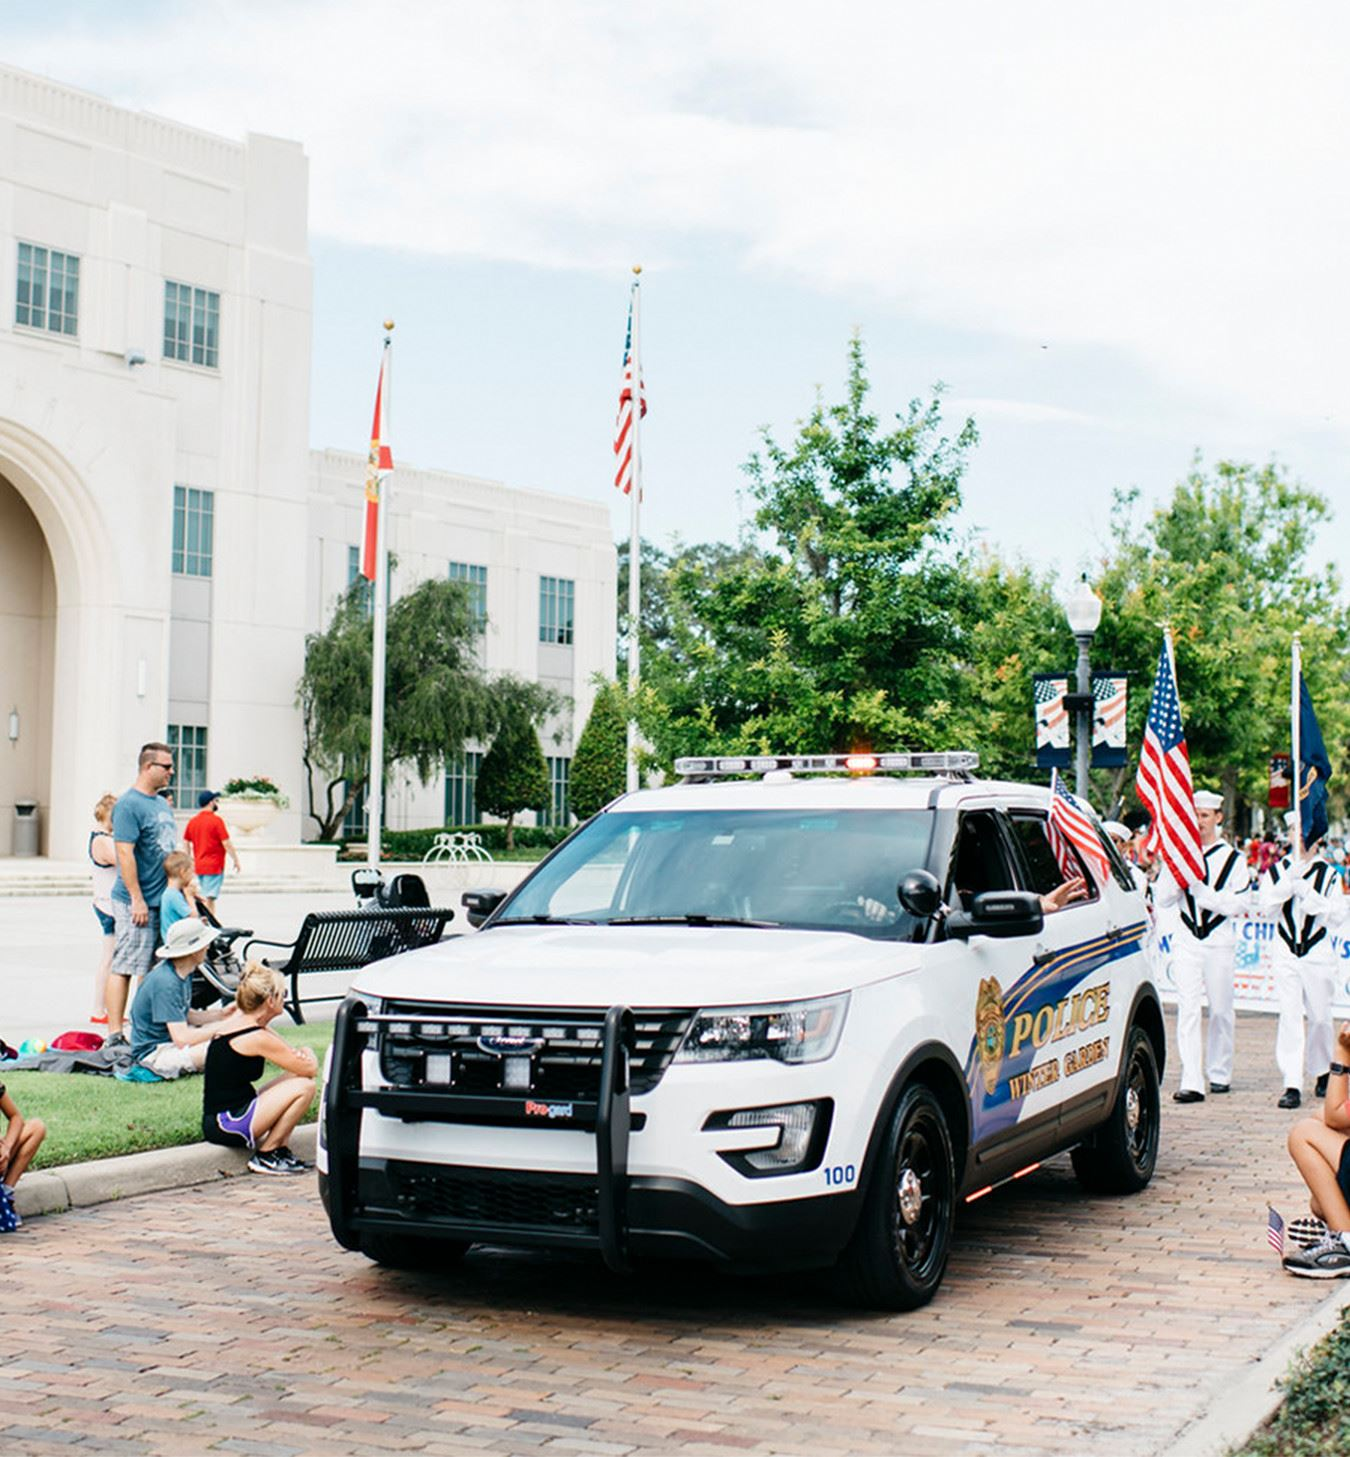 Police Vehicle in a Parade